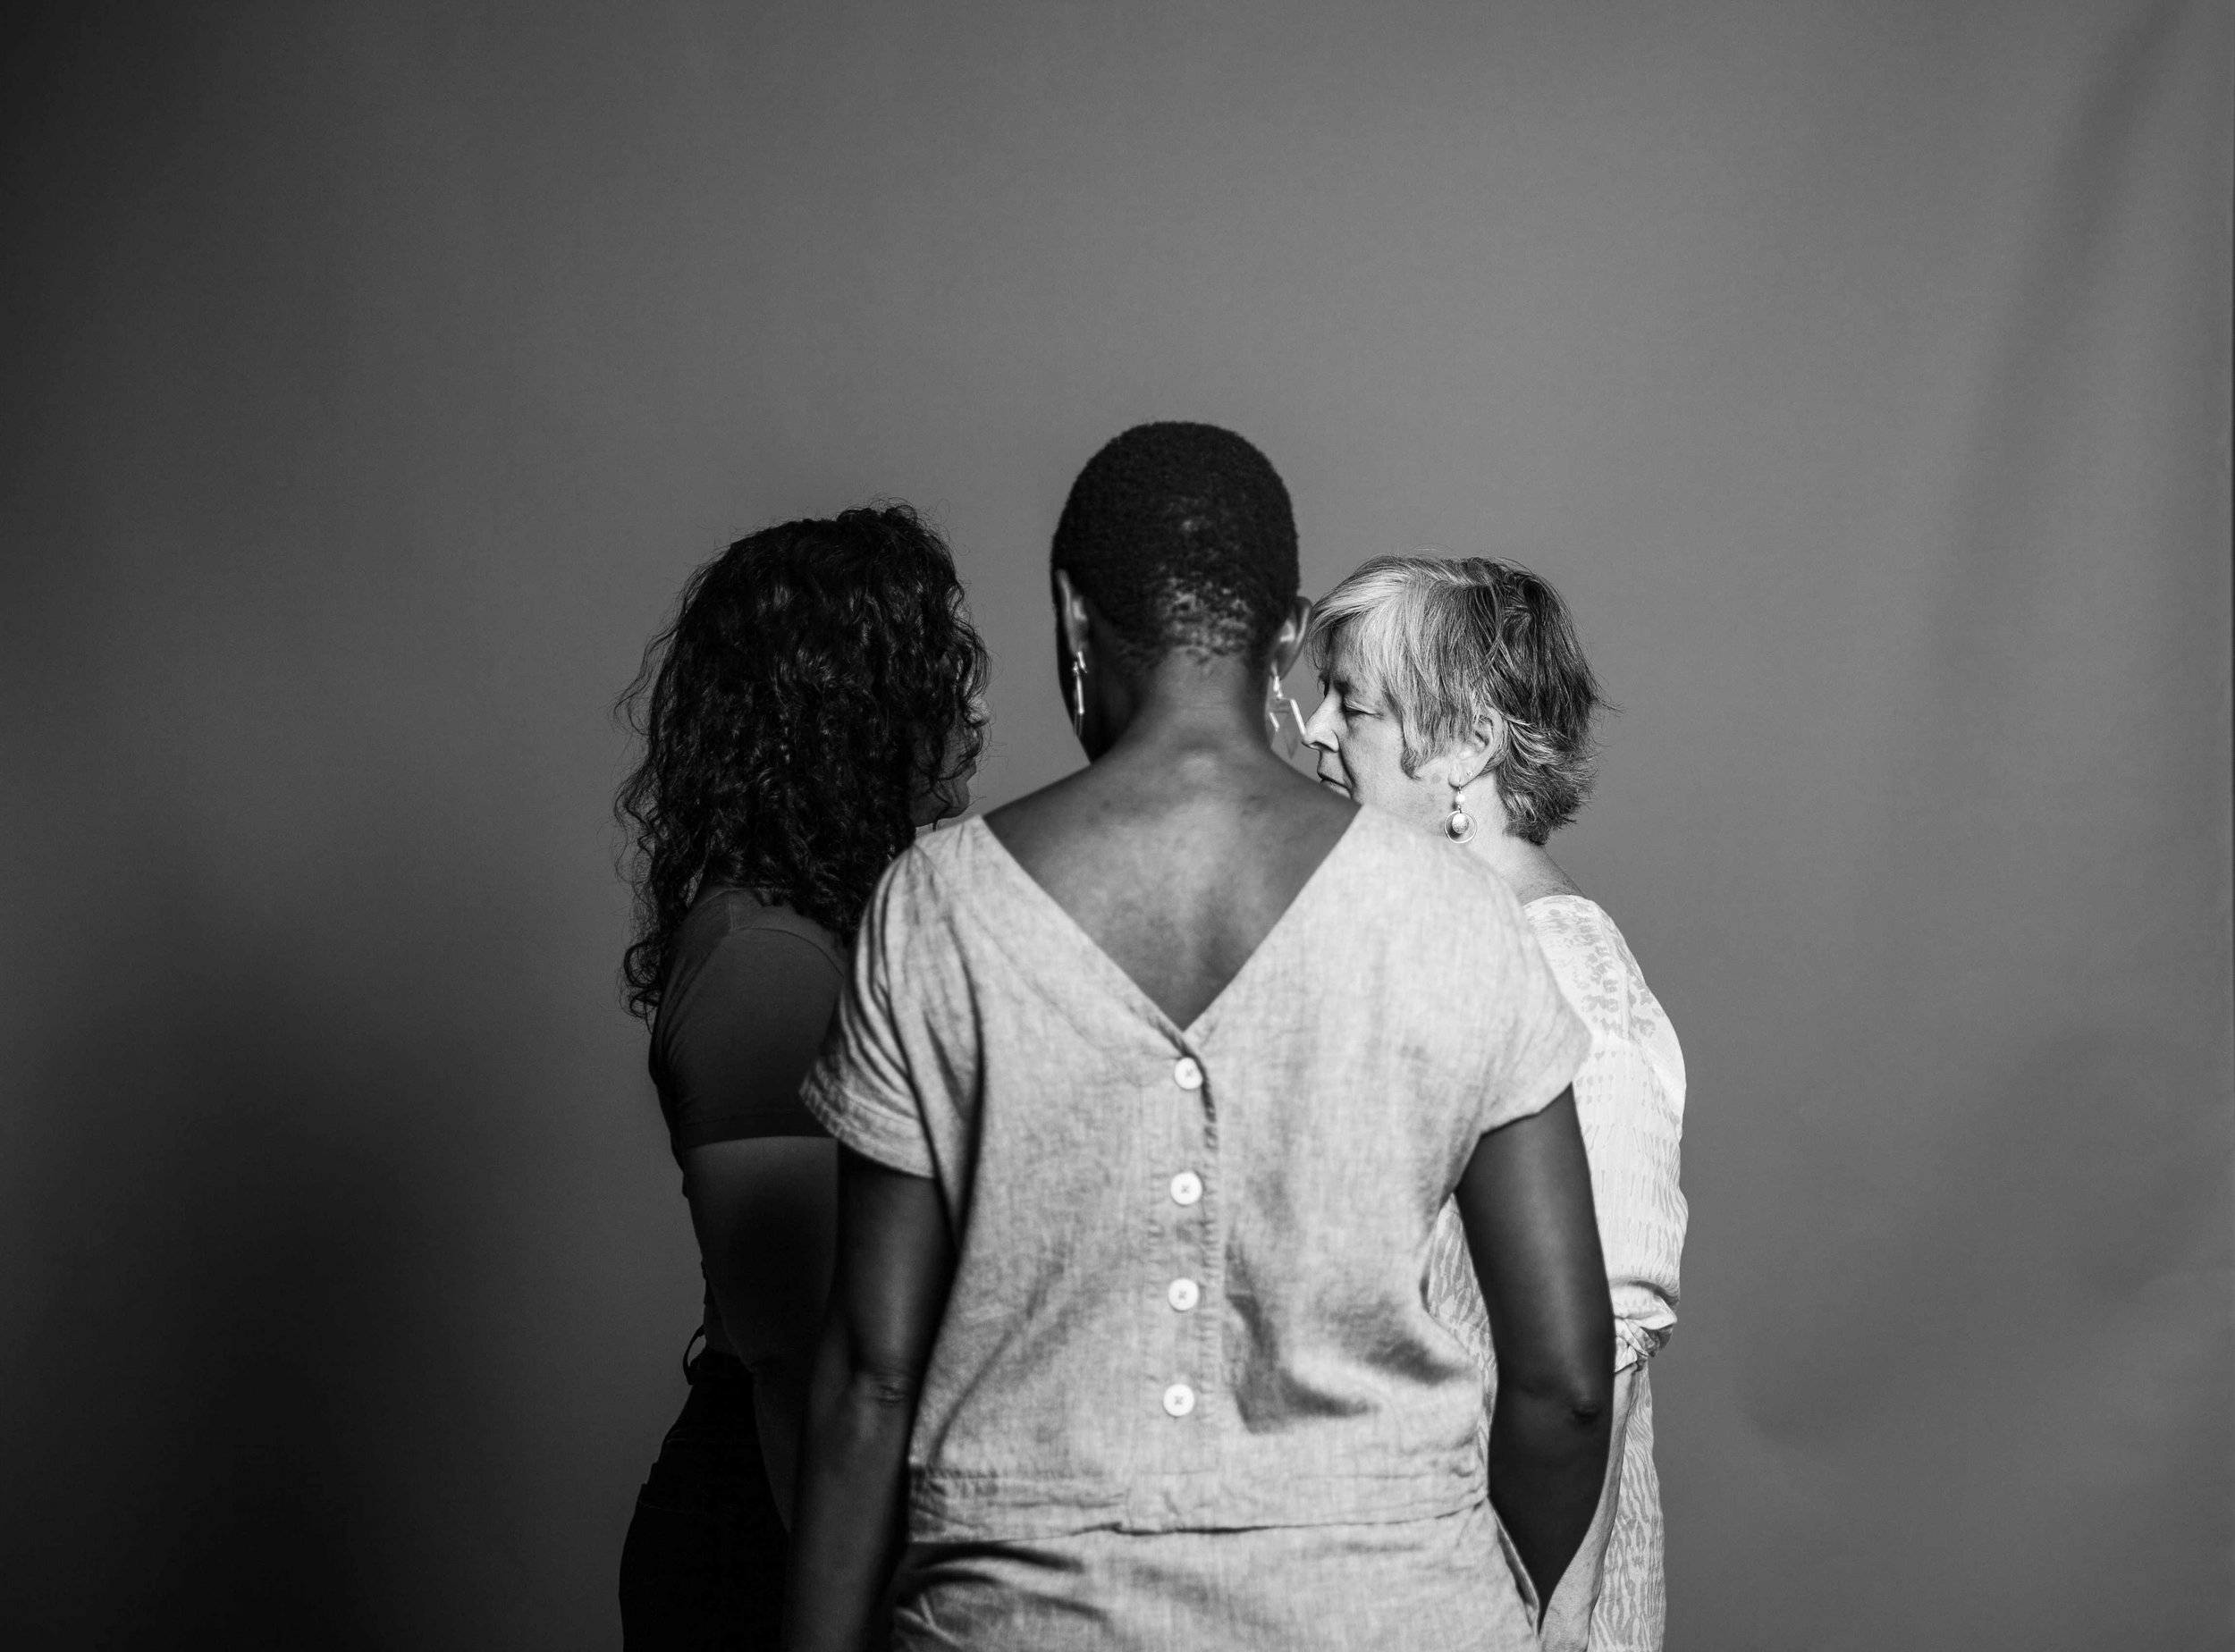 UP IN ARMS   Using ritual, photography and immersive theatre practice to create intimate conversation and radical social change.  Up In Arms is a culmination of our work as activists, creative collaborators, black and white women respectively and friends.